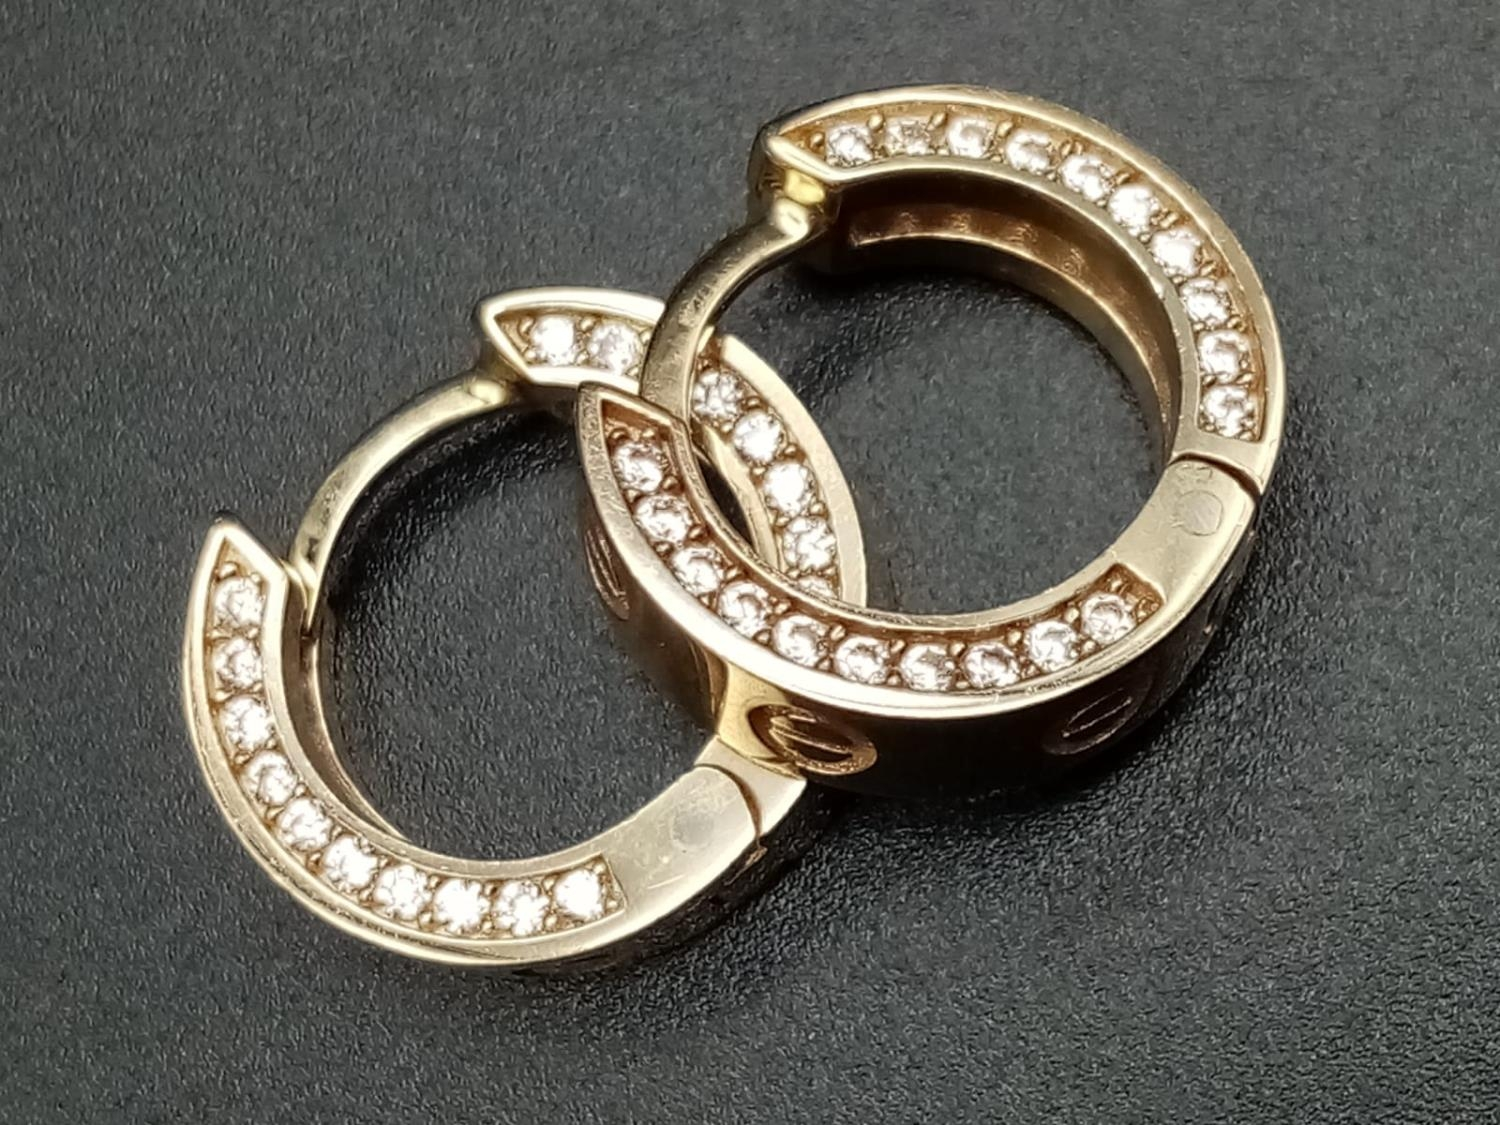 9CT YELLOW GOLD CZ SET CARTIER STYLE MINI HOOP EARRINGS, WEIGHT 4.8G - Image 2 of 5